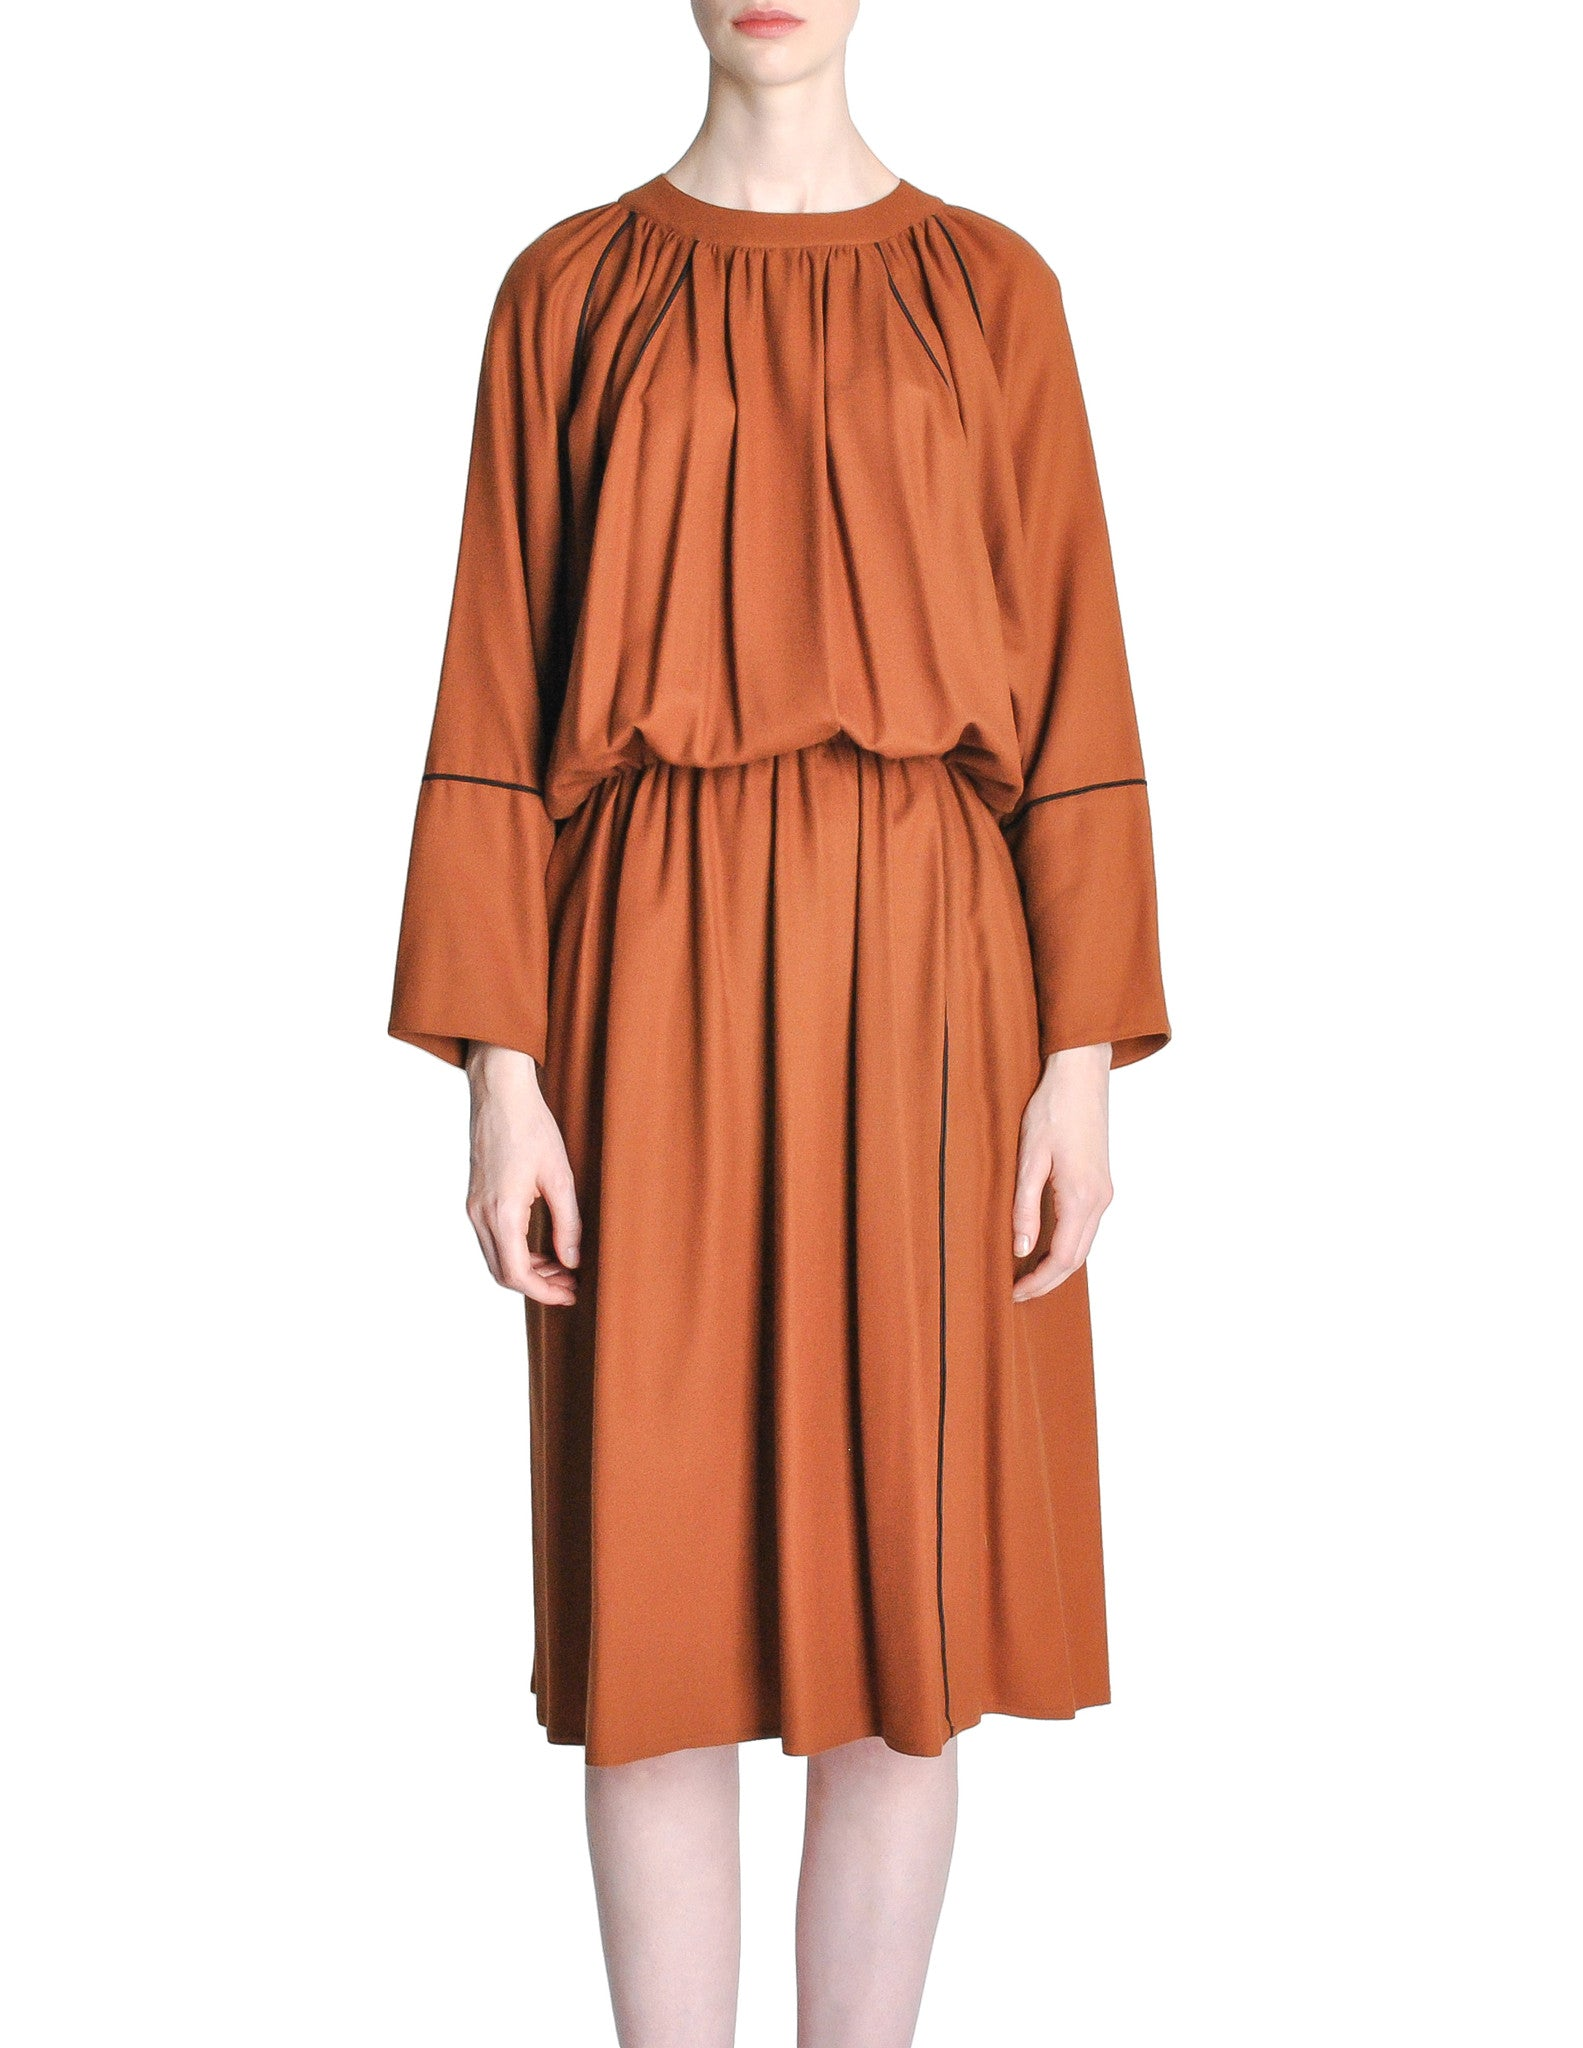 Chloe Vintage Rust Wool Dress - Amarcord Vintage Fashion  - 1